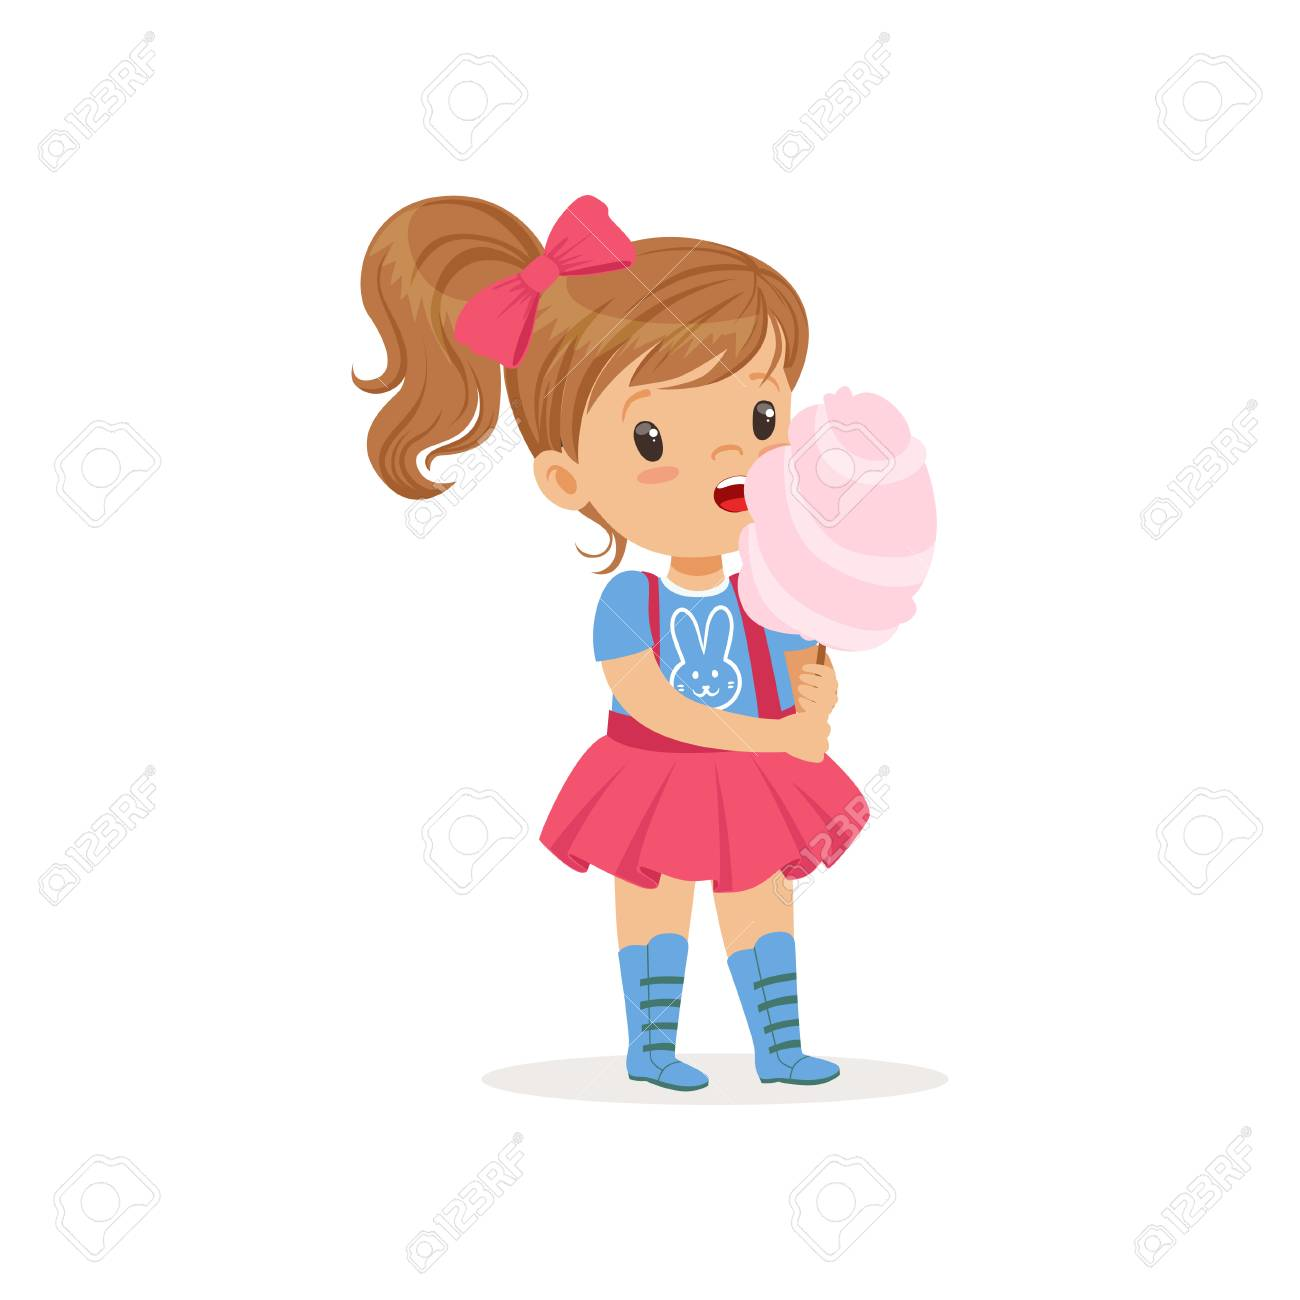 hight resolution of lovely toddler kid eating sweet cotton candy on stick brown haired girl with ponytail